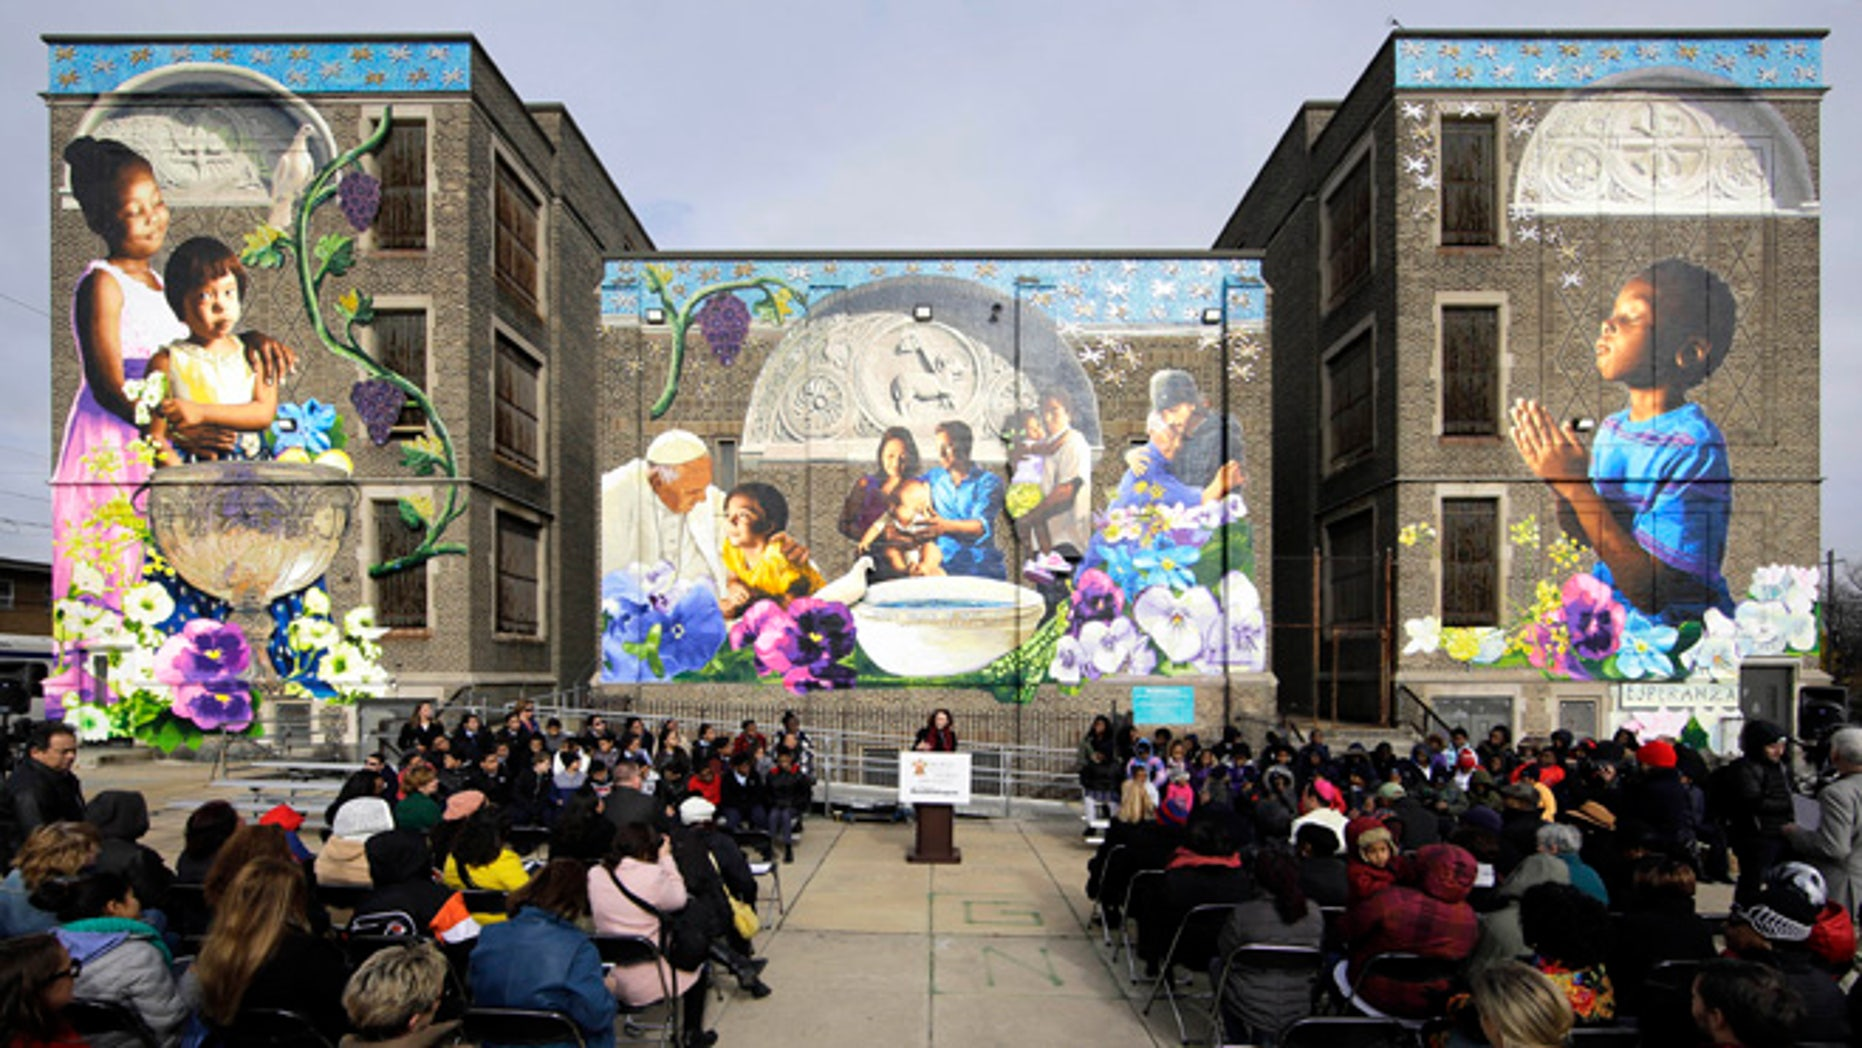 Jane Golden, executive director of the City of Philadelphia Mural Arts Program, speaks during a ceremony dedicating the mural, titled The Sacred Now: Faith and Family in the 21st Century, Monday, Nov. 30, 2015, in Philadelphia. Organizers are hoping the mural featuring Pope Francis is eligible for the Guinness World Record for âMost Contributions to a Painting by Numbers.â More than 2,700 people, including the pontiff himself, helped create the multistory artwork.  (AP Photo/Matt Rourke)